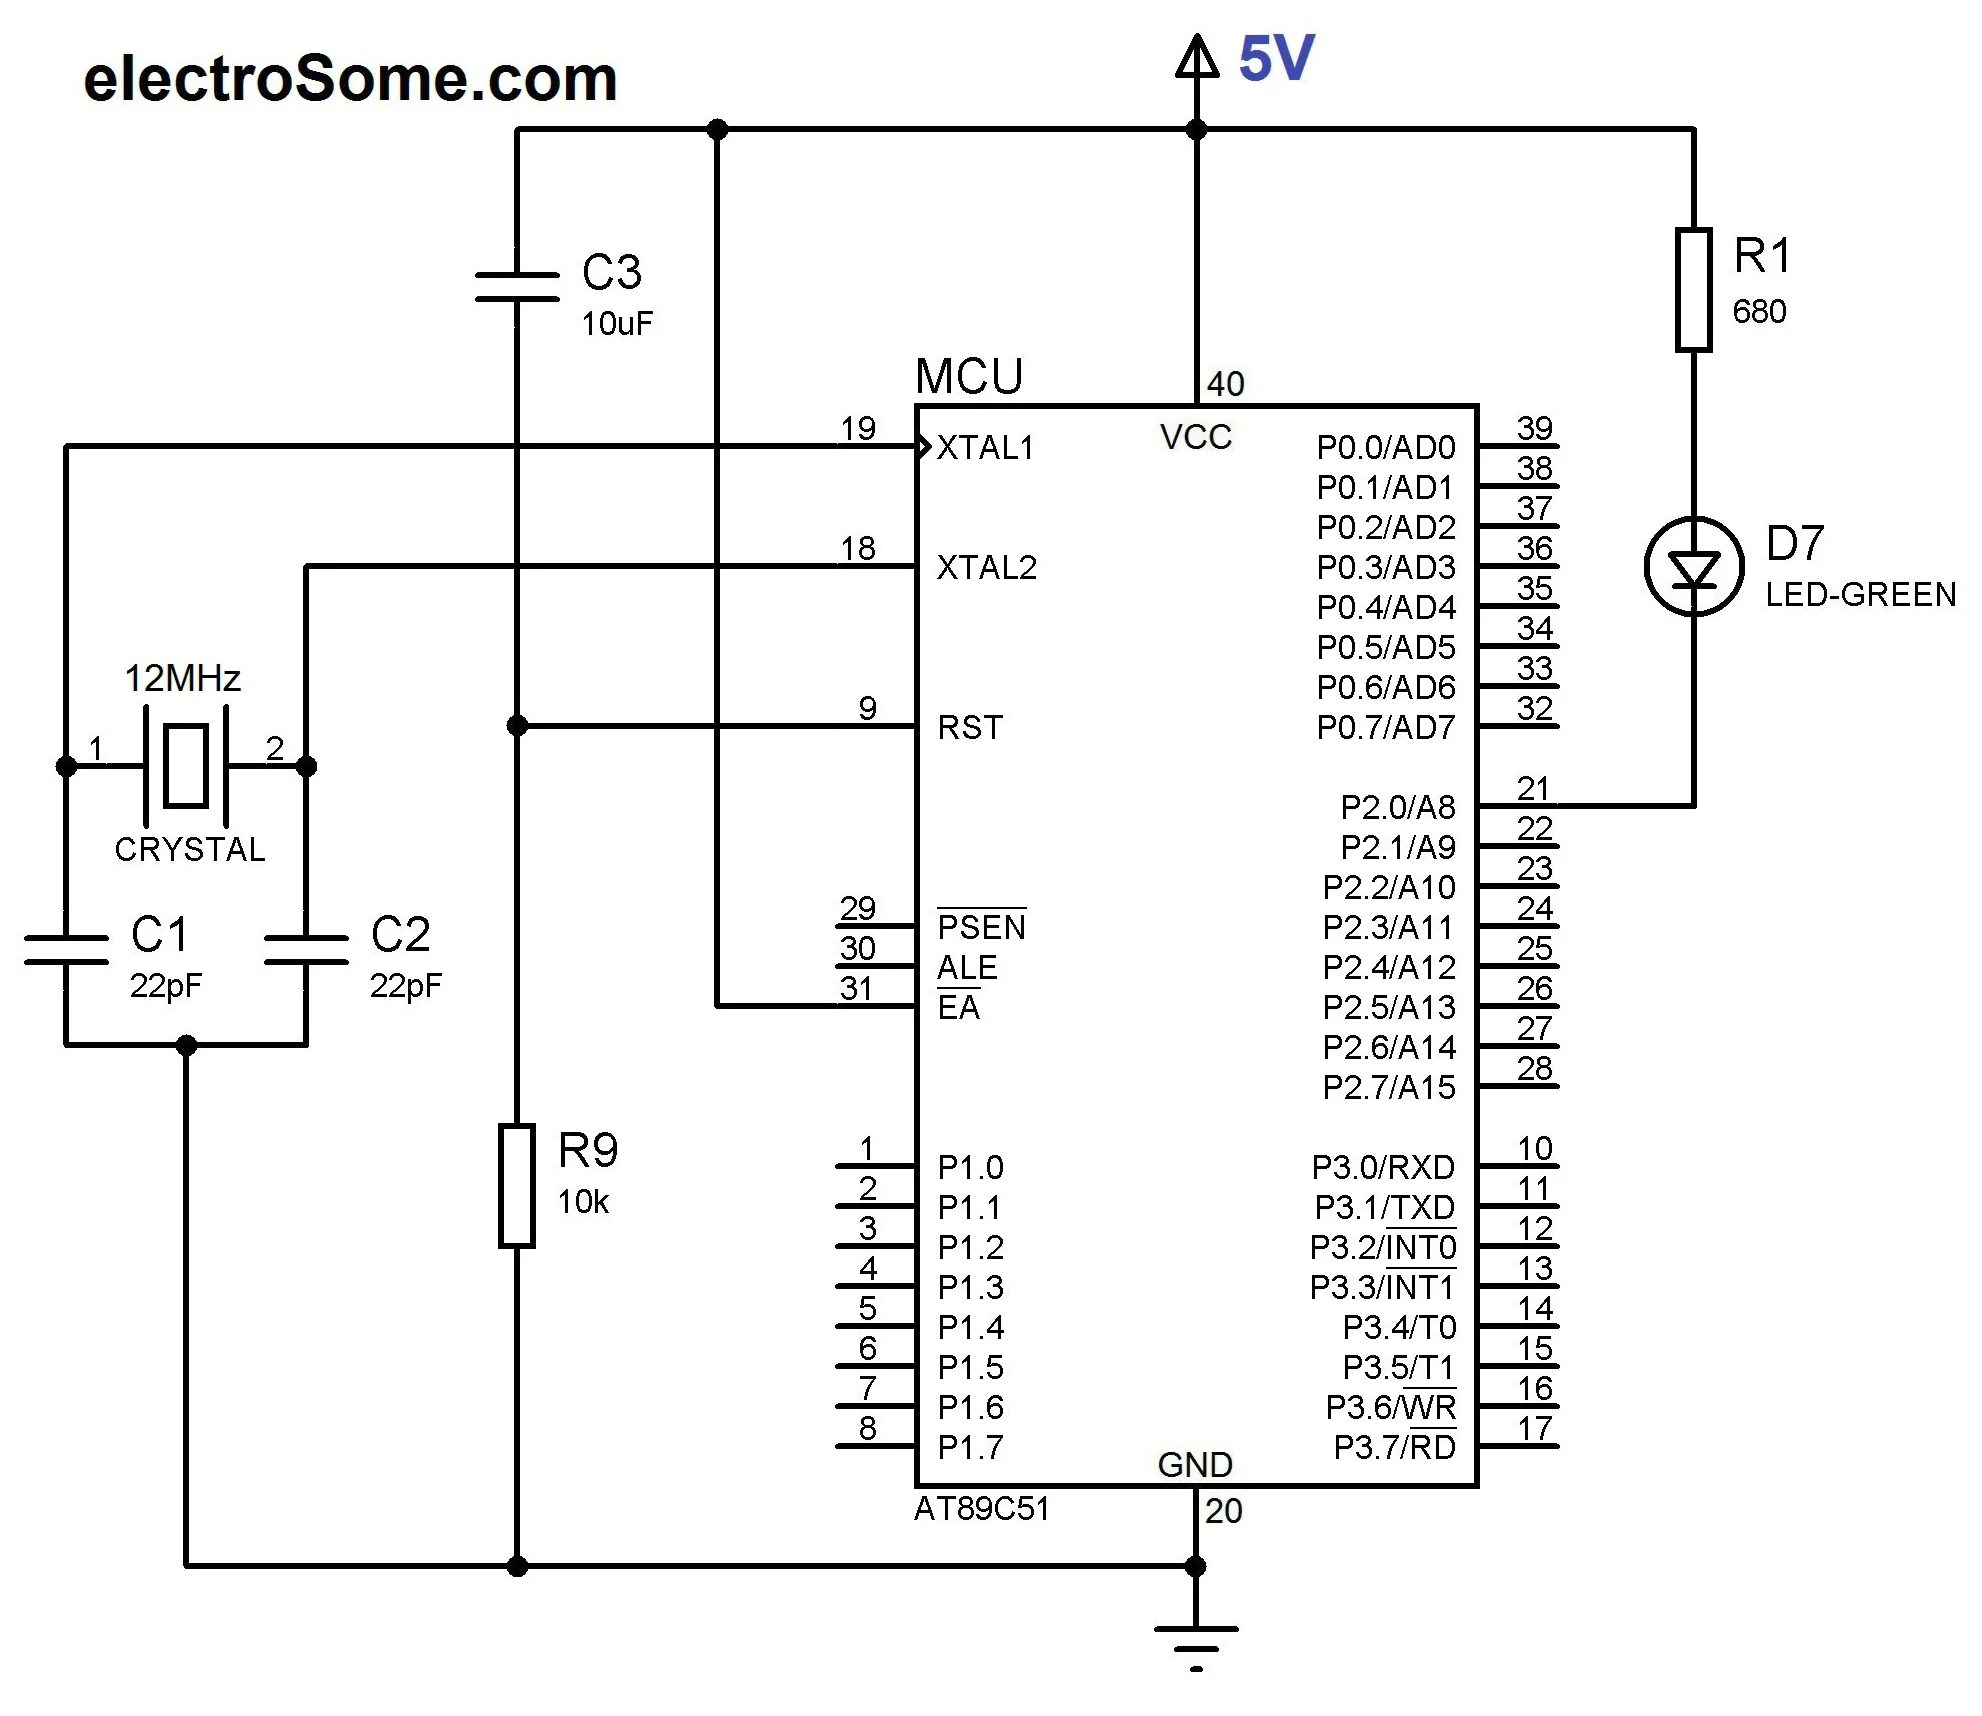 hight resolution of circuit diagram led blinking with 8051 microcontroller at89c51